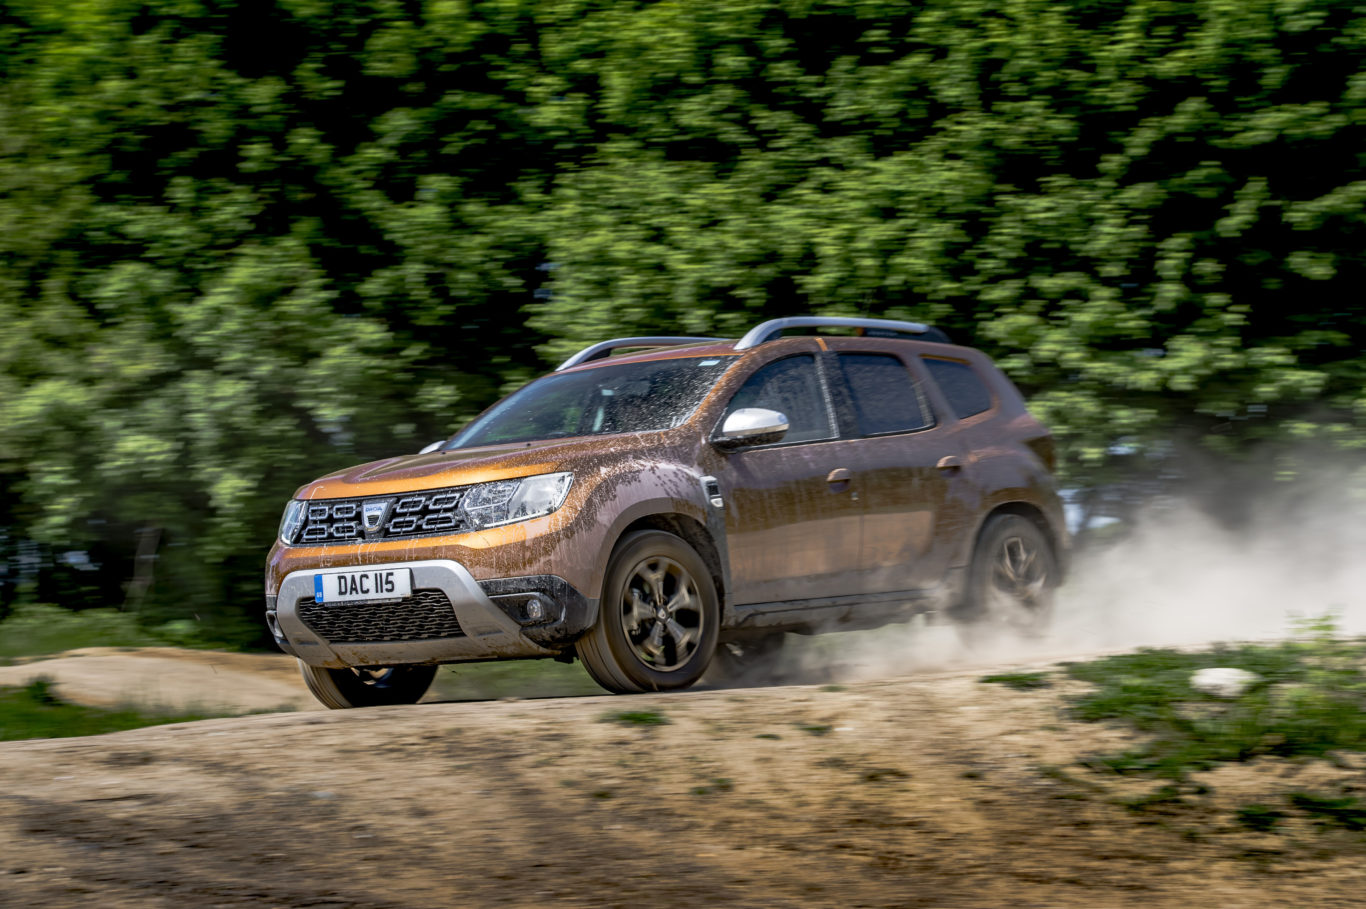 First drive: The Dacia Duster is incredible value | Express